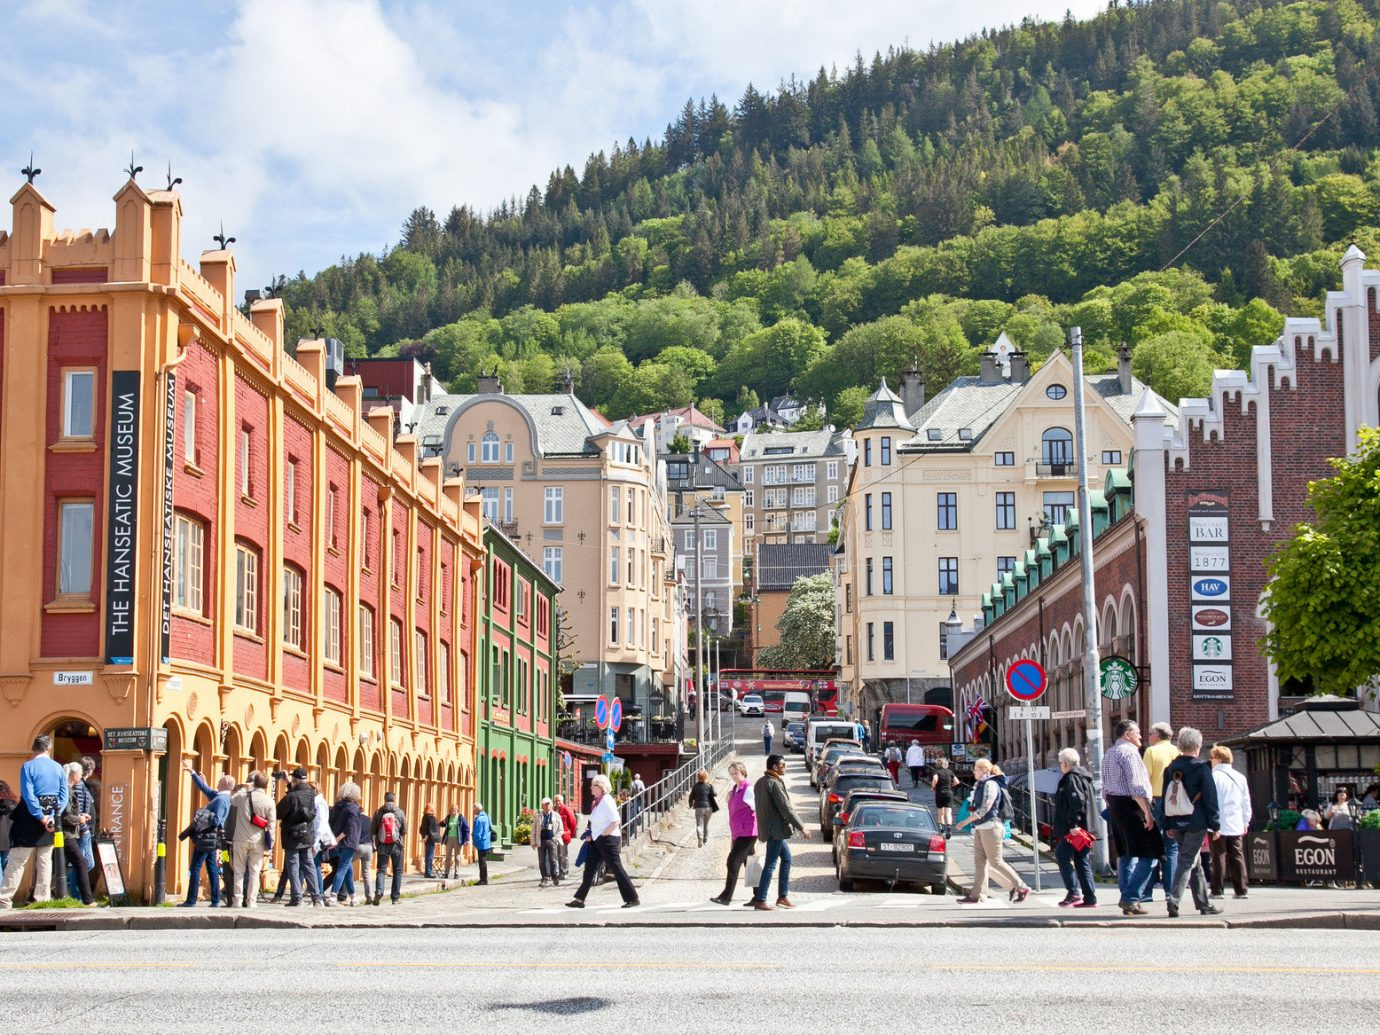 Architecture city streets europe Nature people streets trees Trip Ideas outdoor road Town City neighbourhood human settlement Downtown town square street tourism cityscape plaza infrastructure pedestrian walkway square crowd